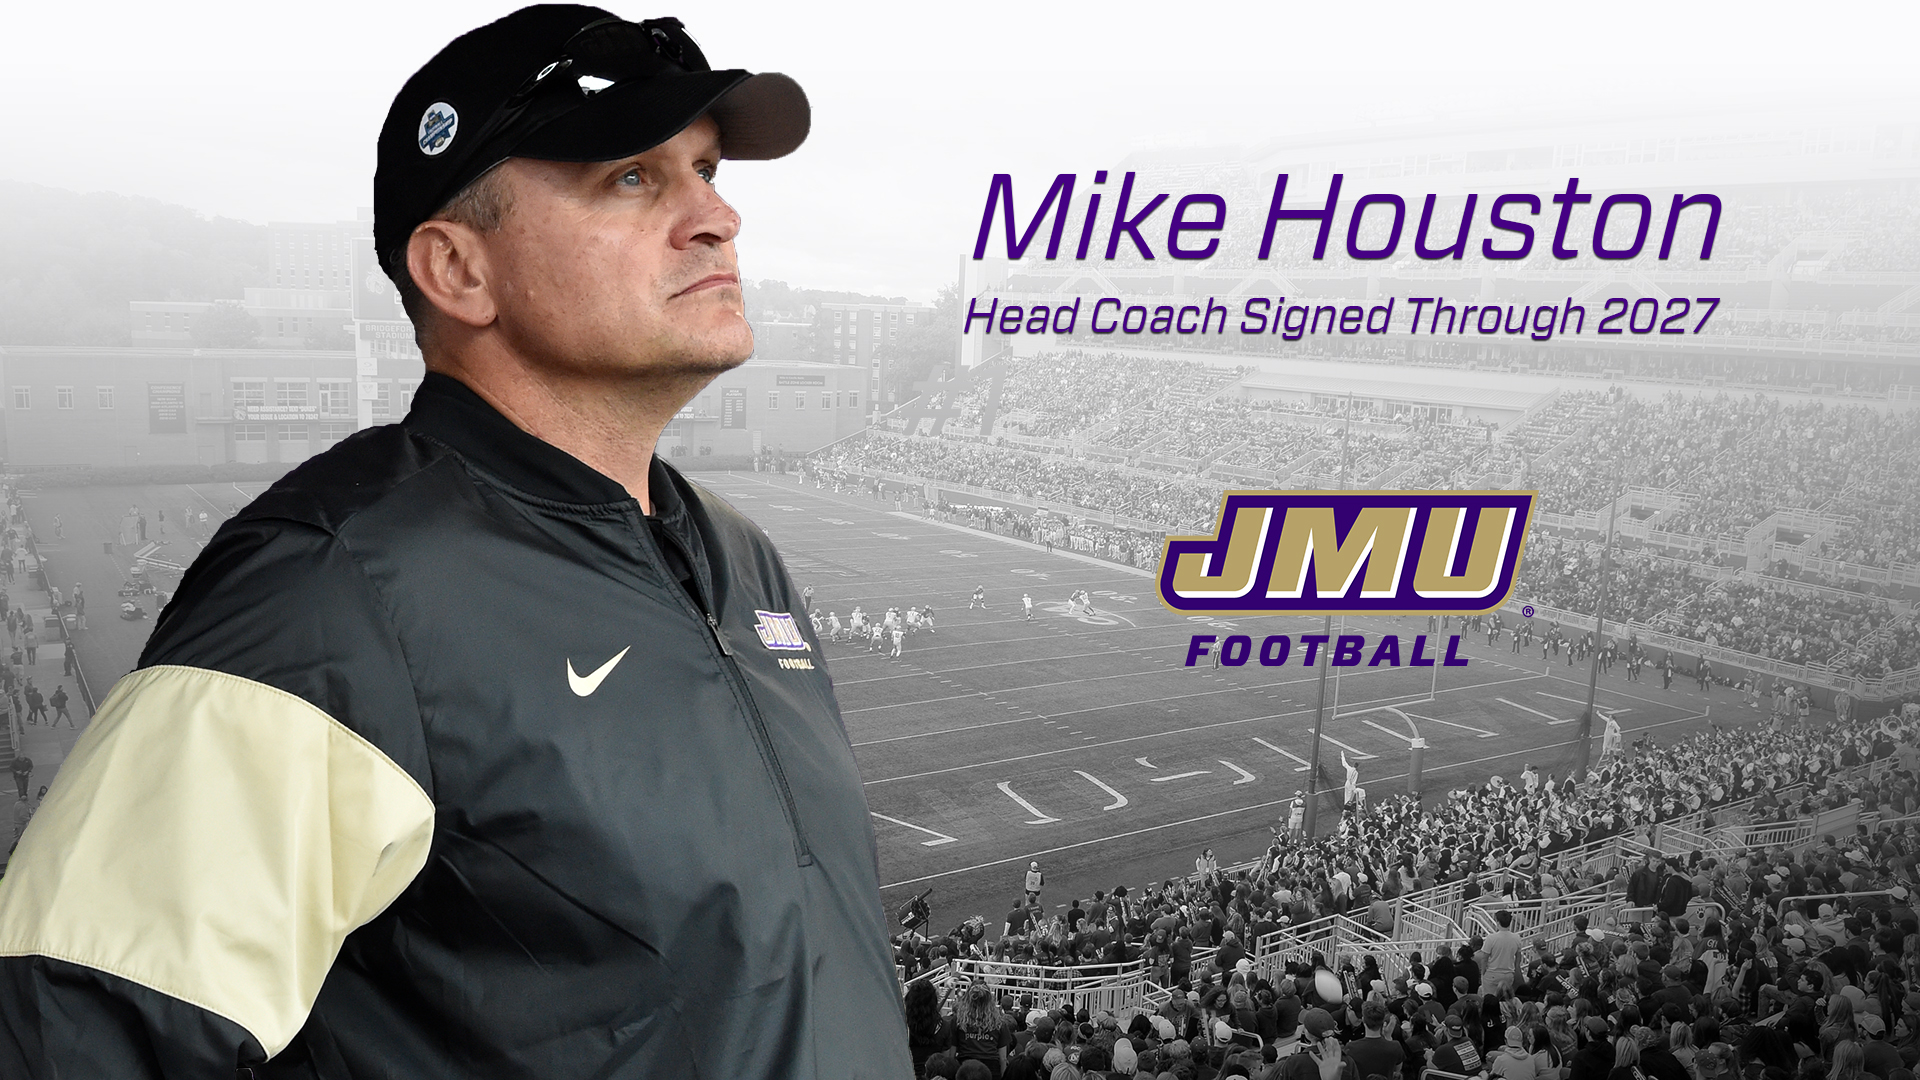 Football, Administration: Mike Houston Signs 10-Year Extension as Head Coach of James Madison Football)